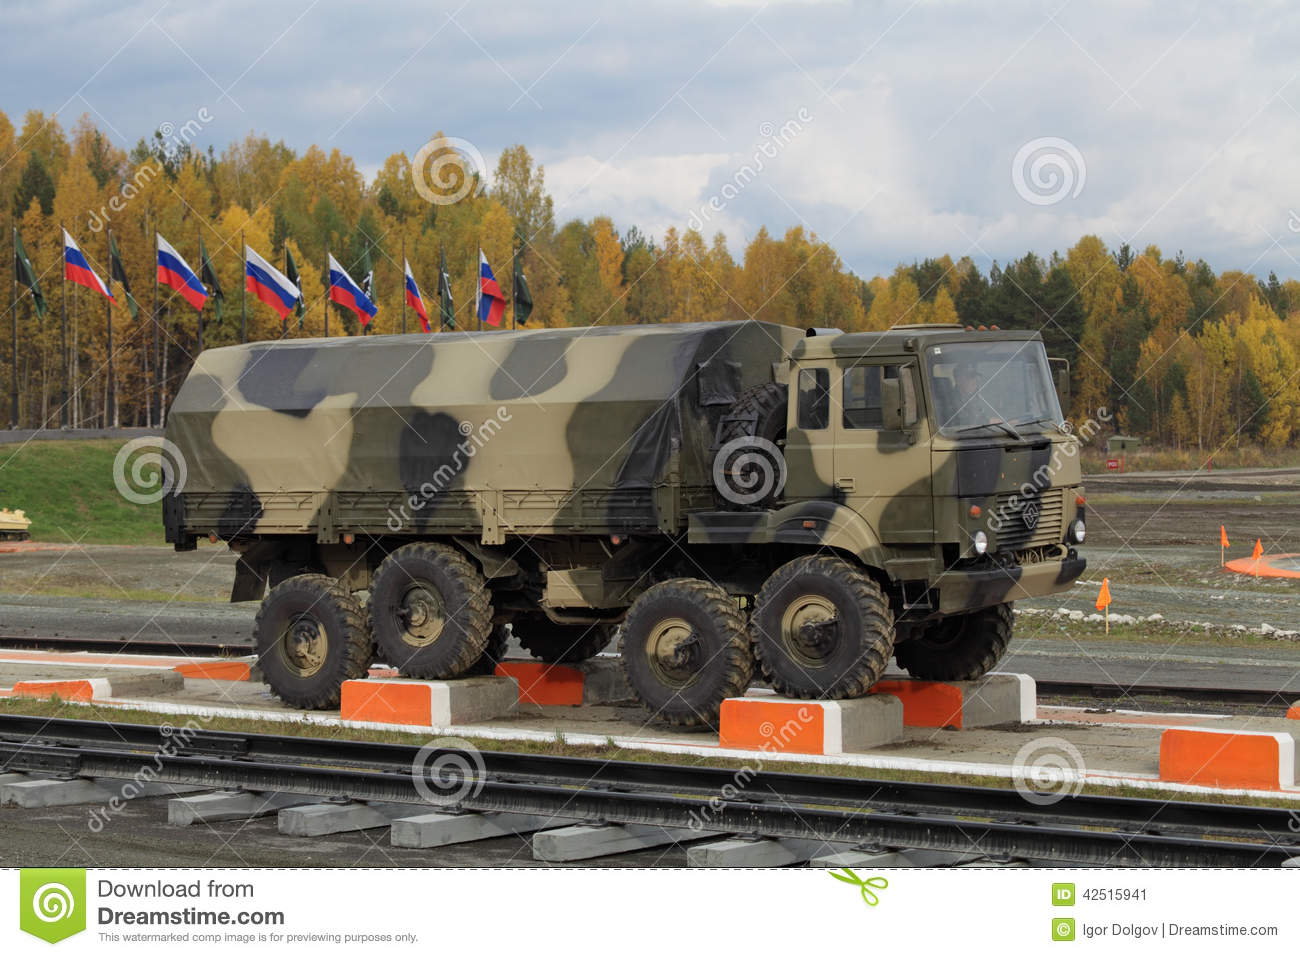 Ural-5323: technical specifications, reviews. Ural trucks 67